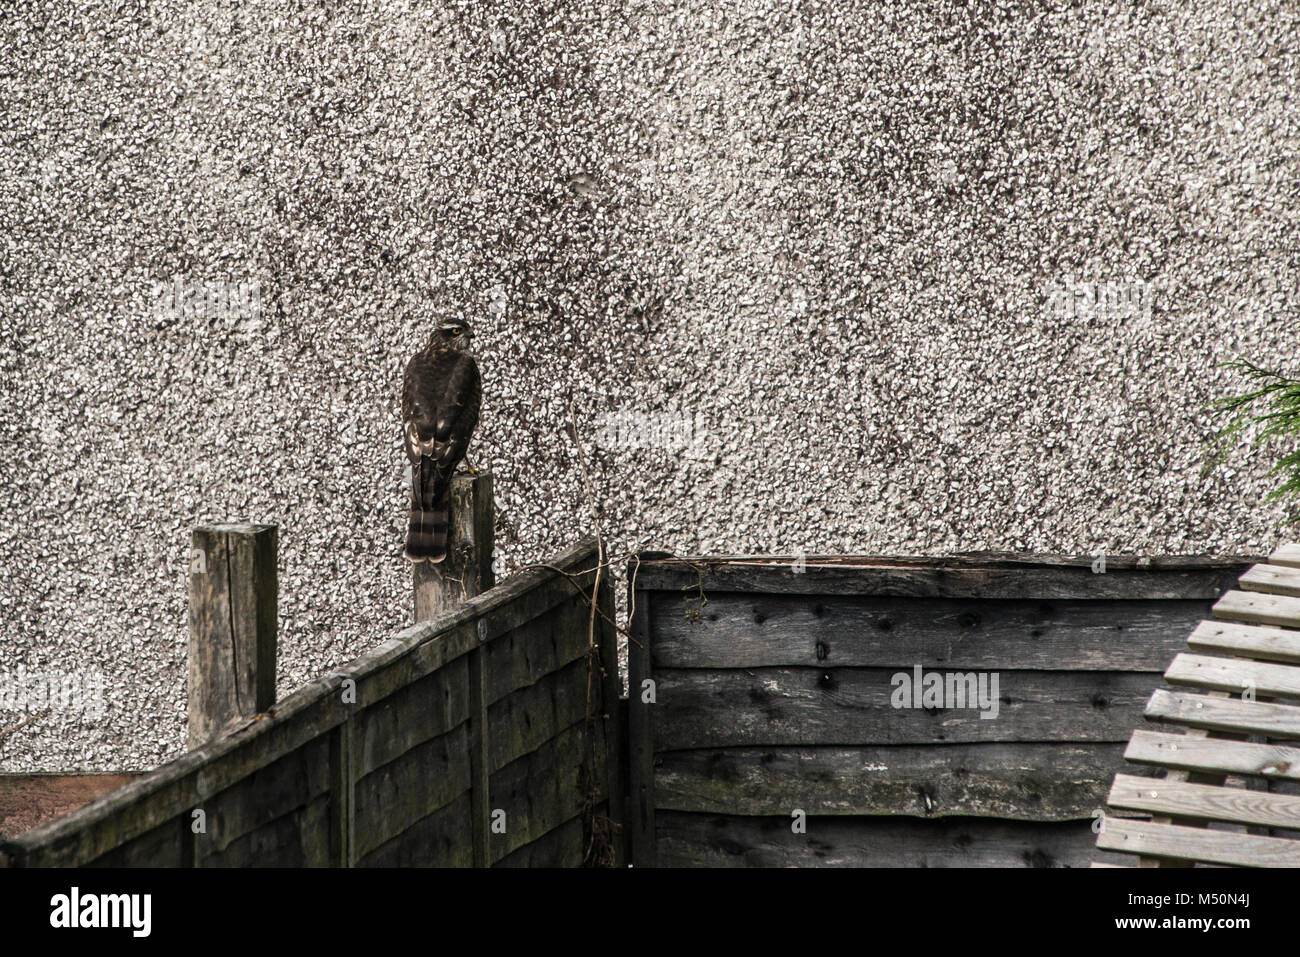 A sparrowhawk (Accipiter nisus) perched on a fence post of a garden fence in West Lothian - Stock Image